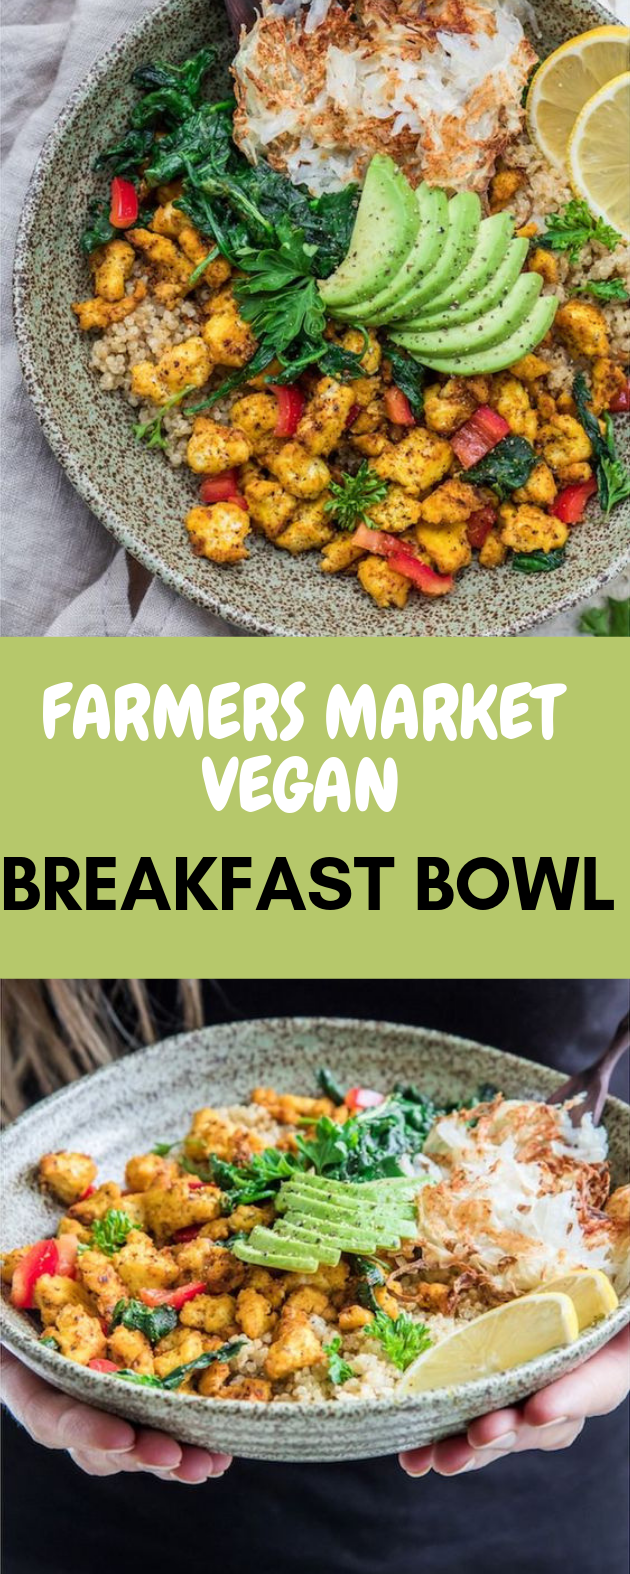 FARMERS MARKET VEGAN BREAKFAST BOWL #familyrecipes #foods